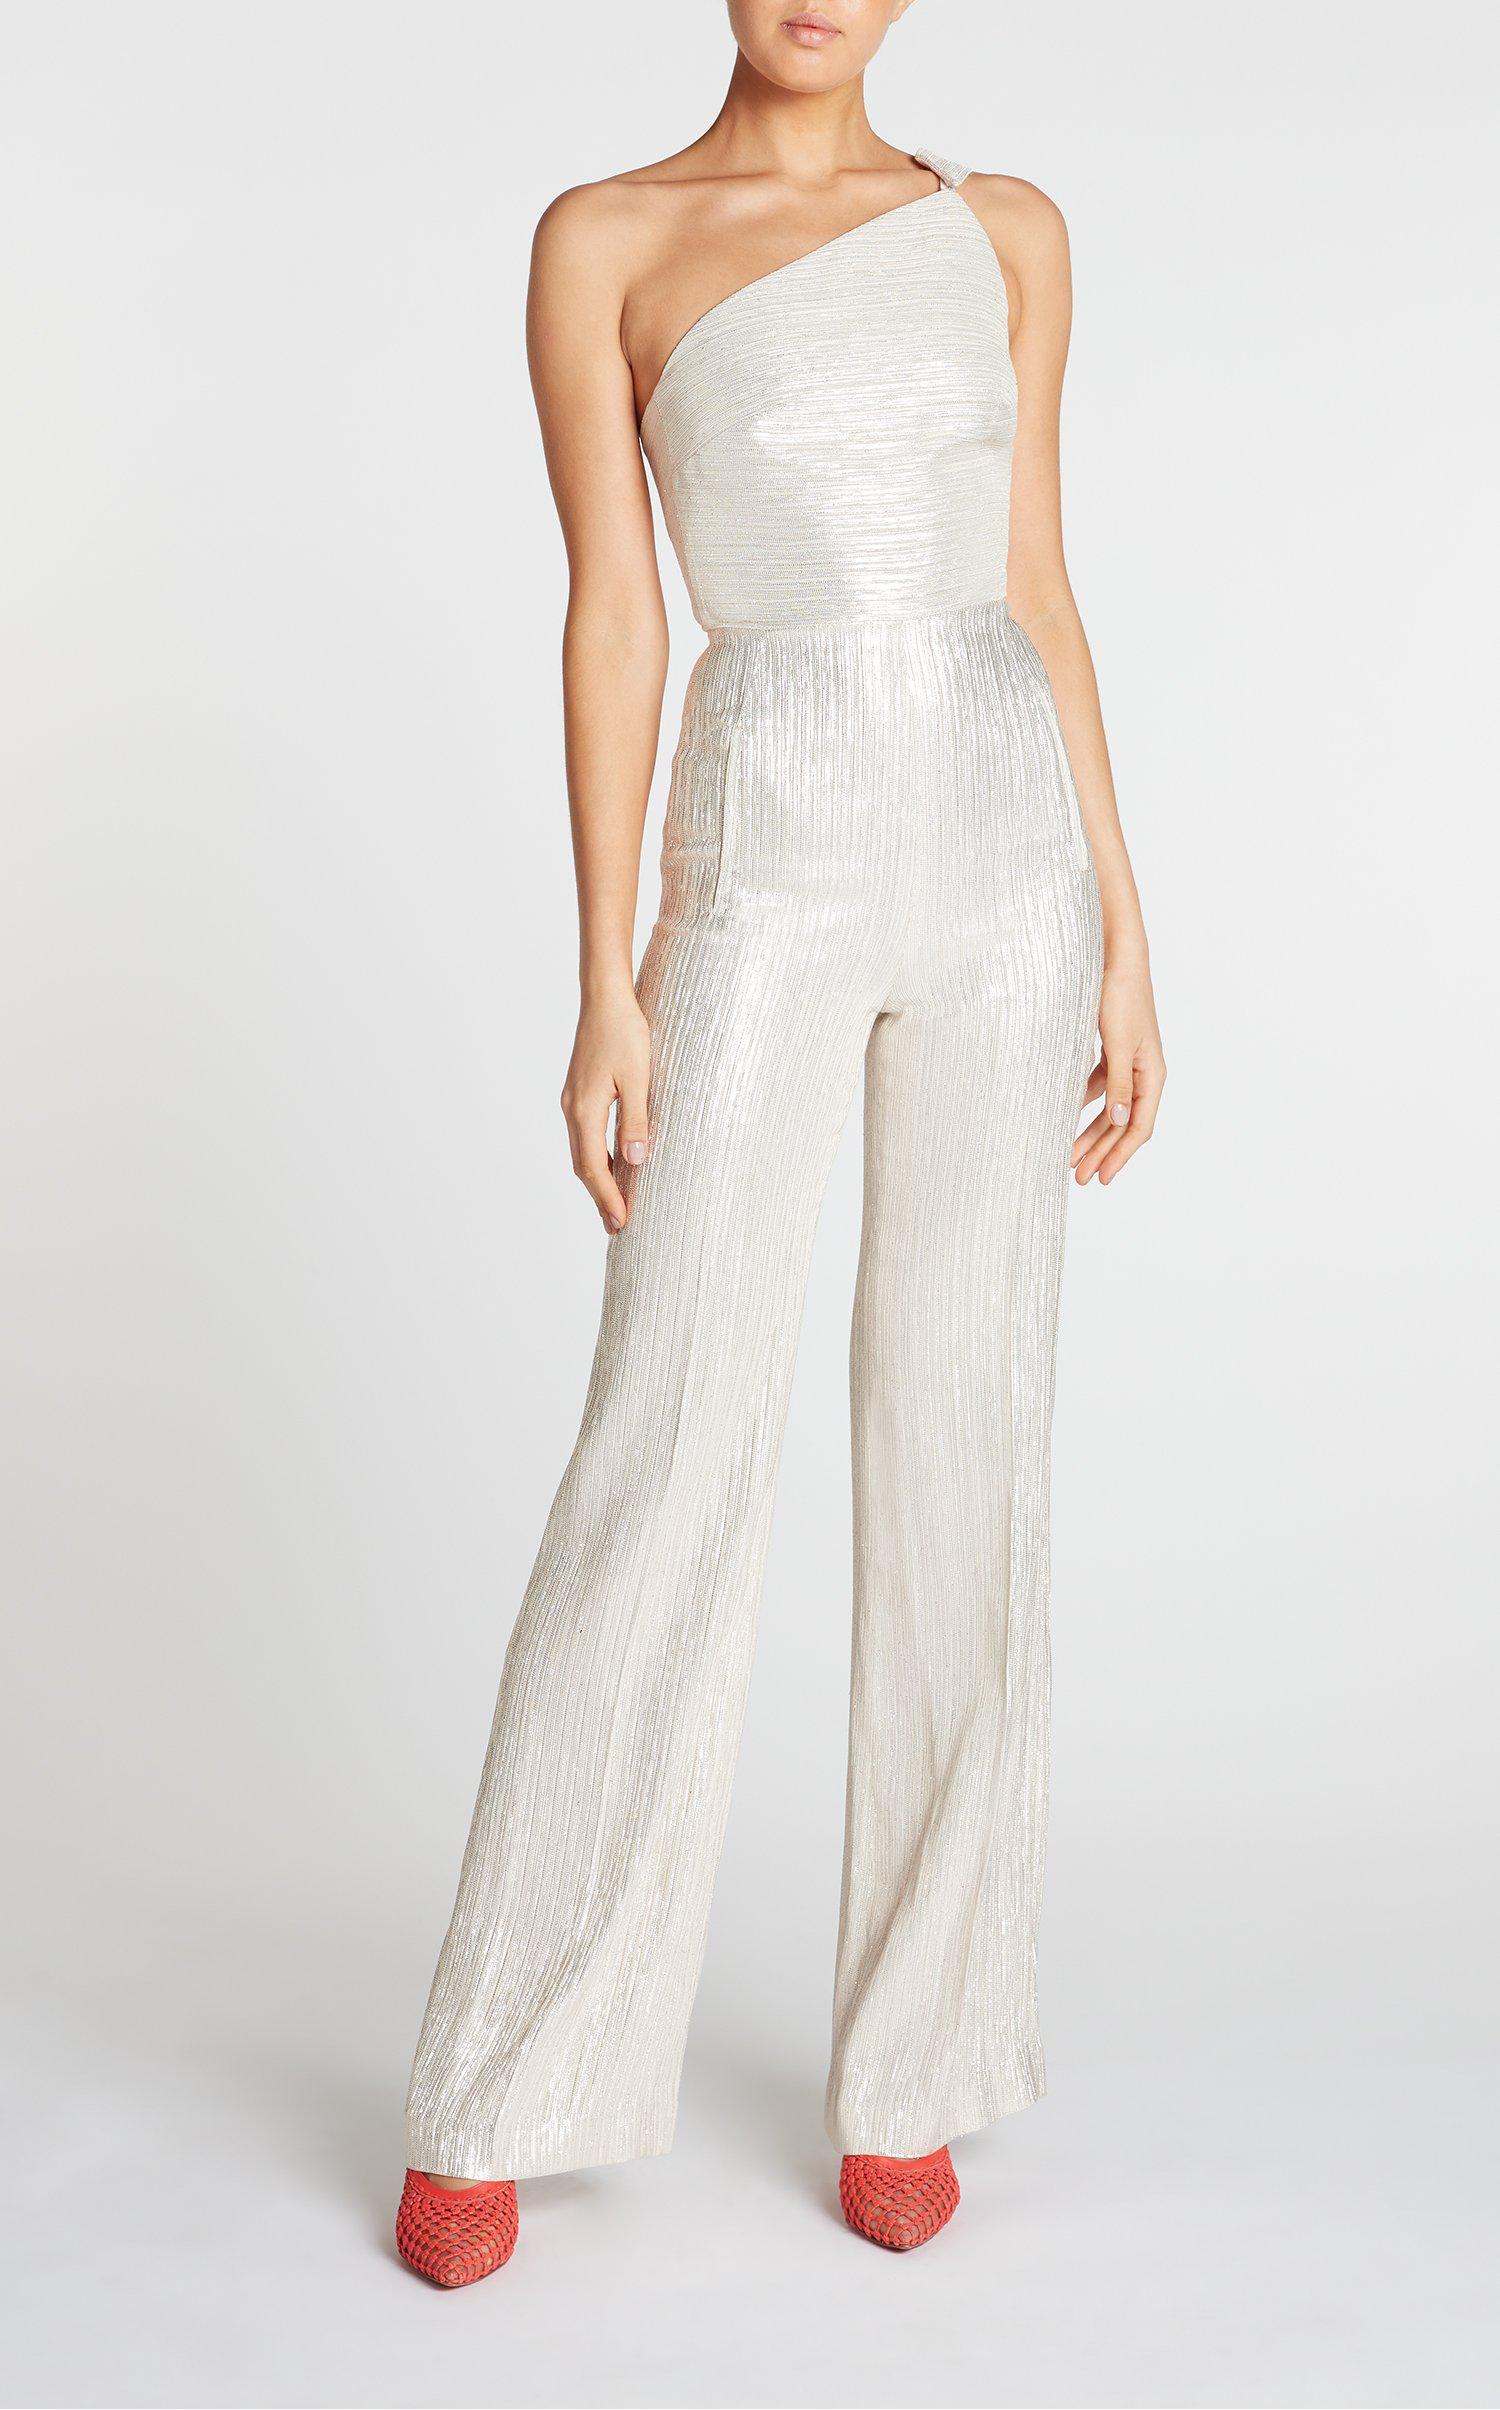 3671a373b05 Roland Mouret Truro Jumpsuit in White - Lyst